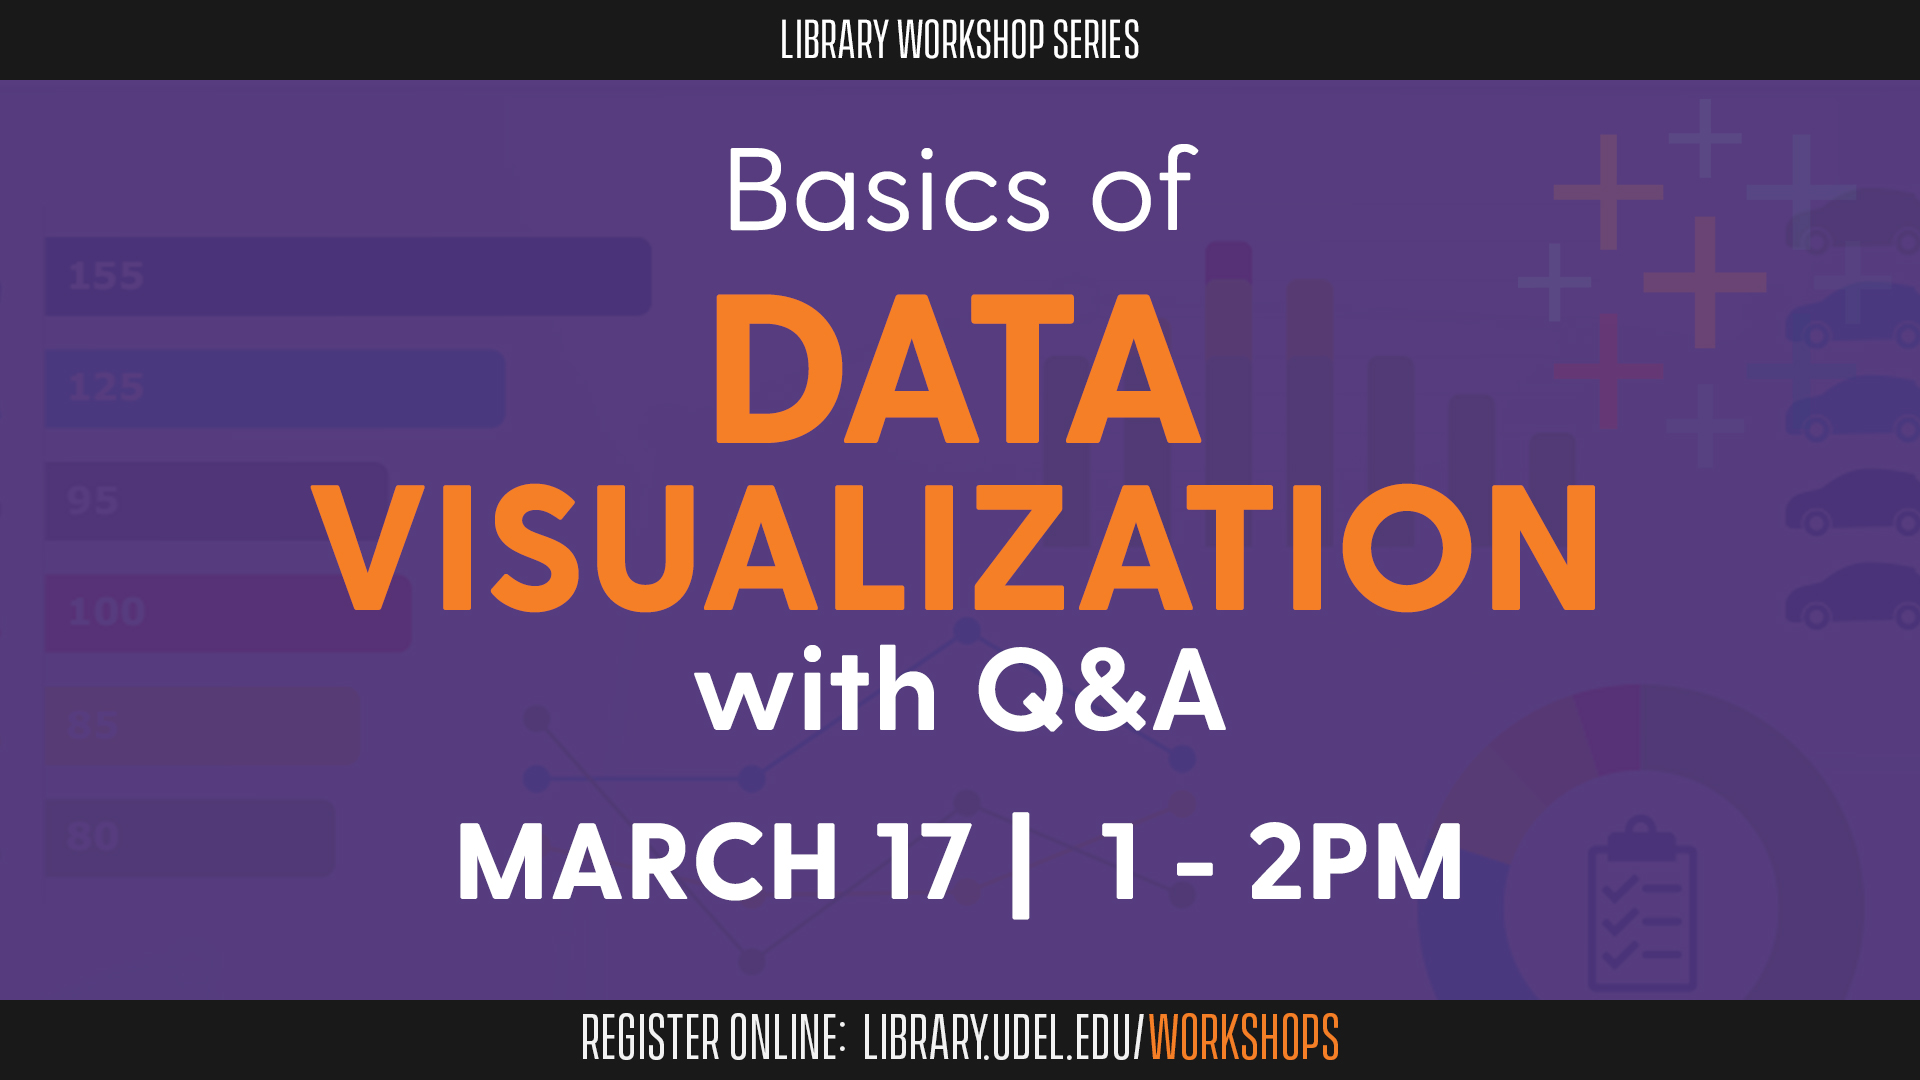 Basics of Data Visualization with Q&A